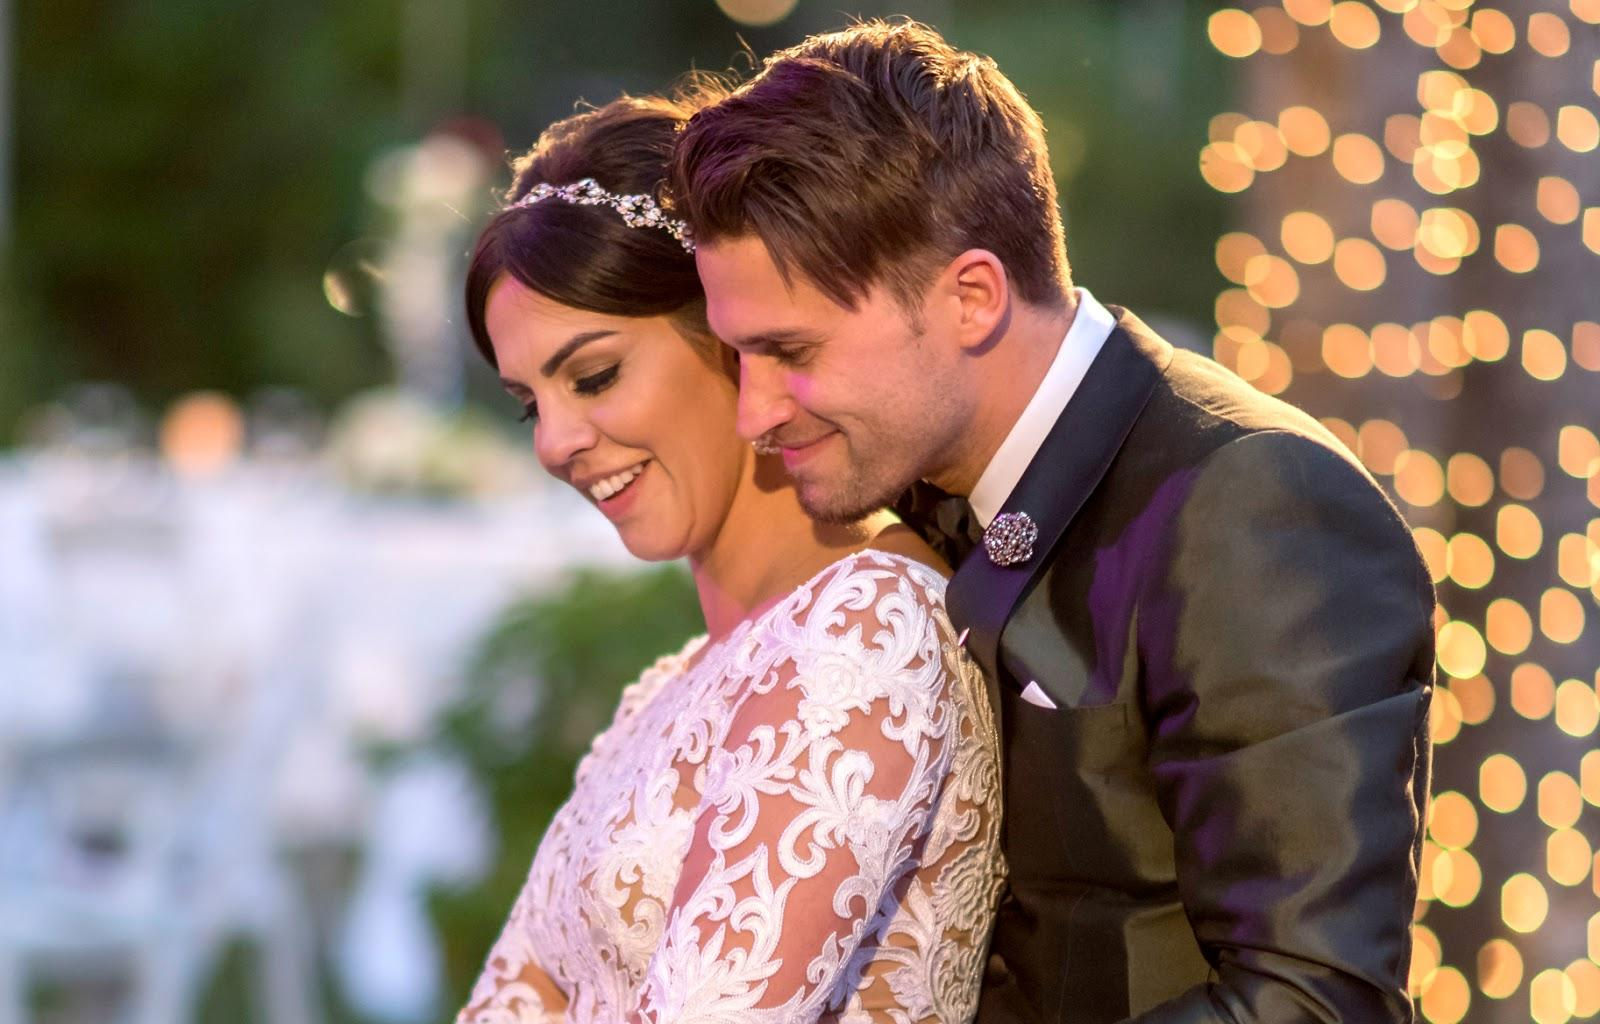 Tom Schwartz And Katie Maloney Never Legally Got Married, Says Lance Bass - The Truth!